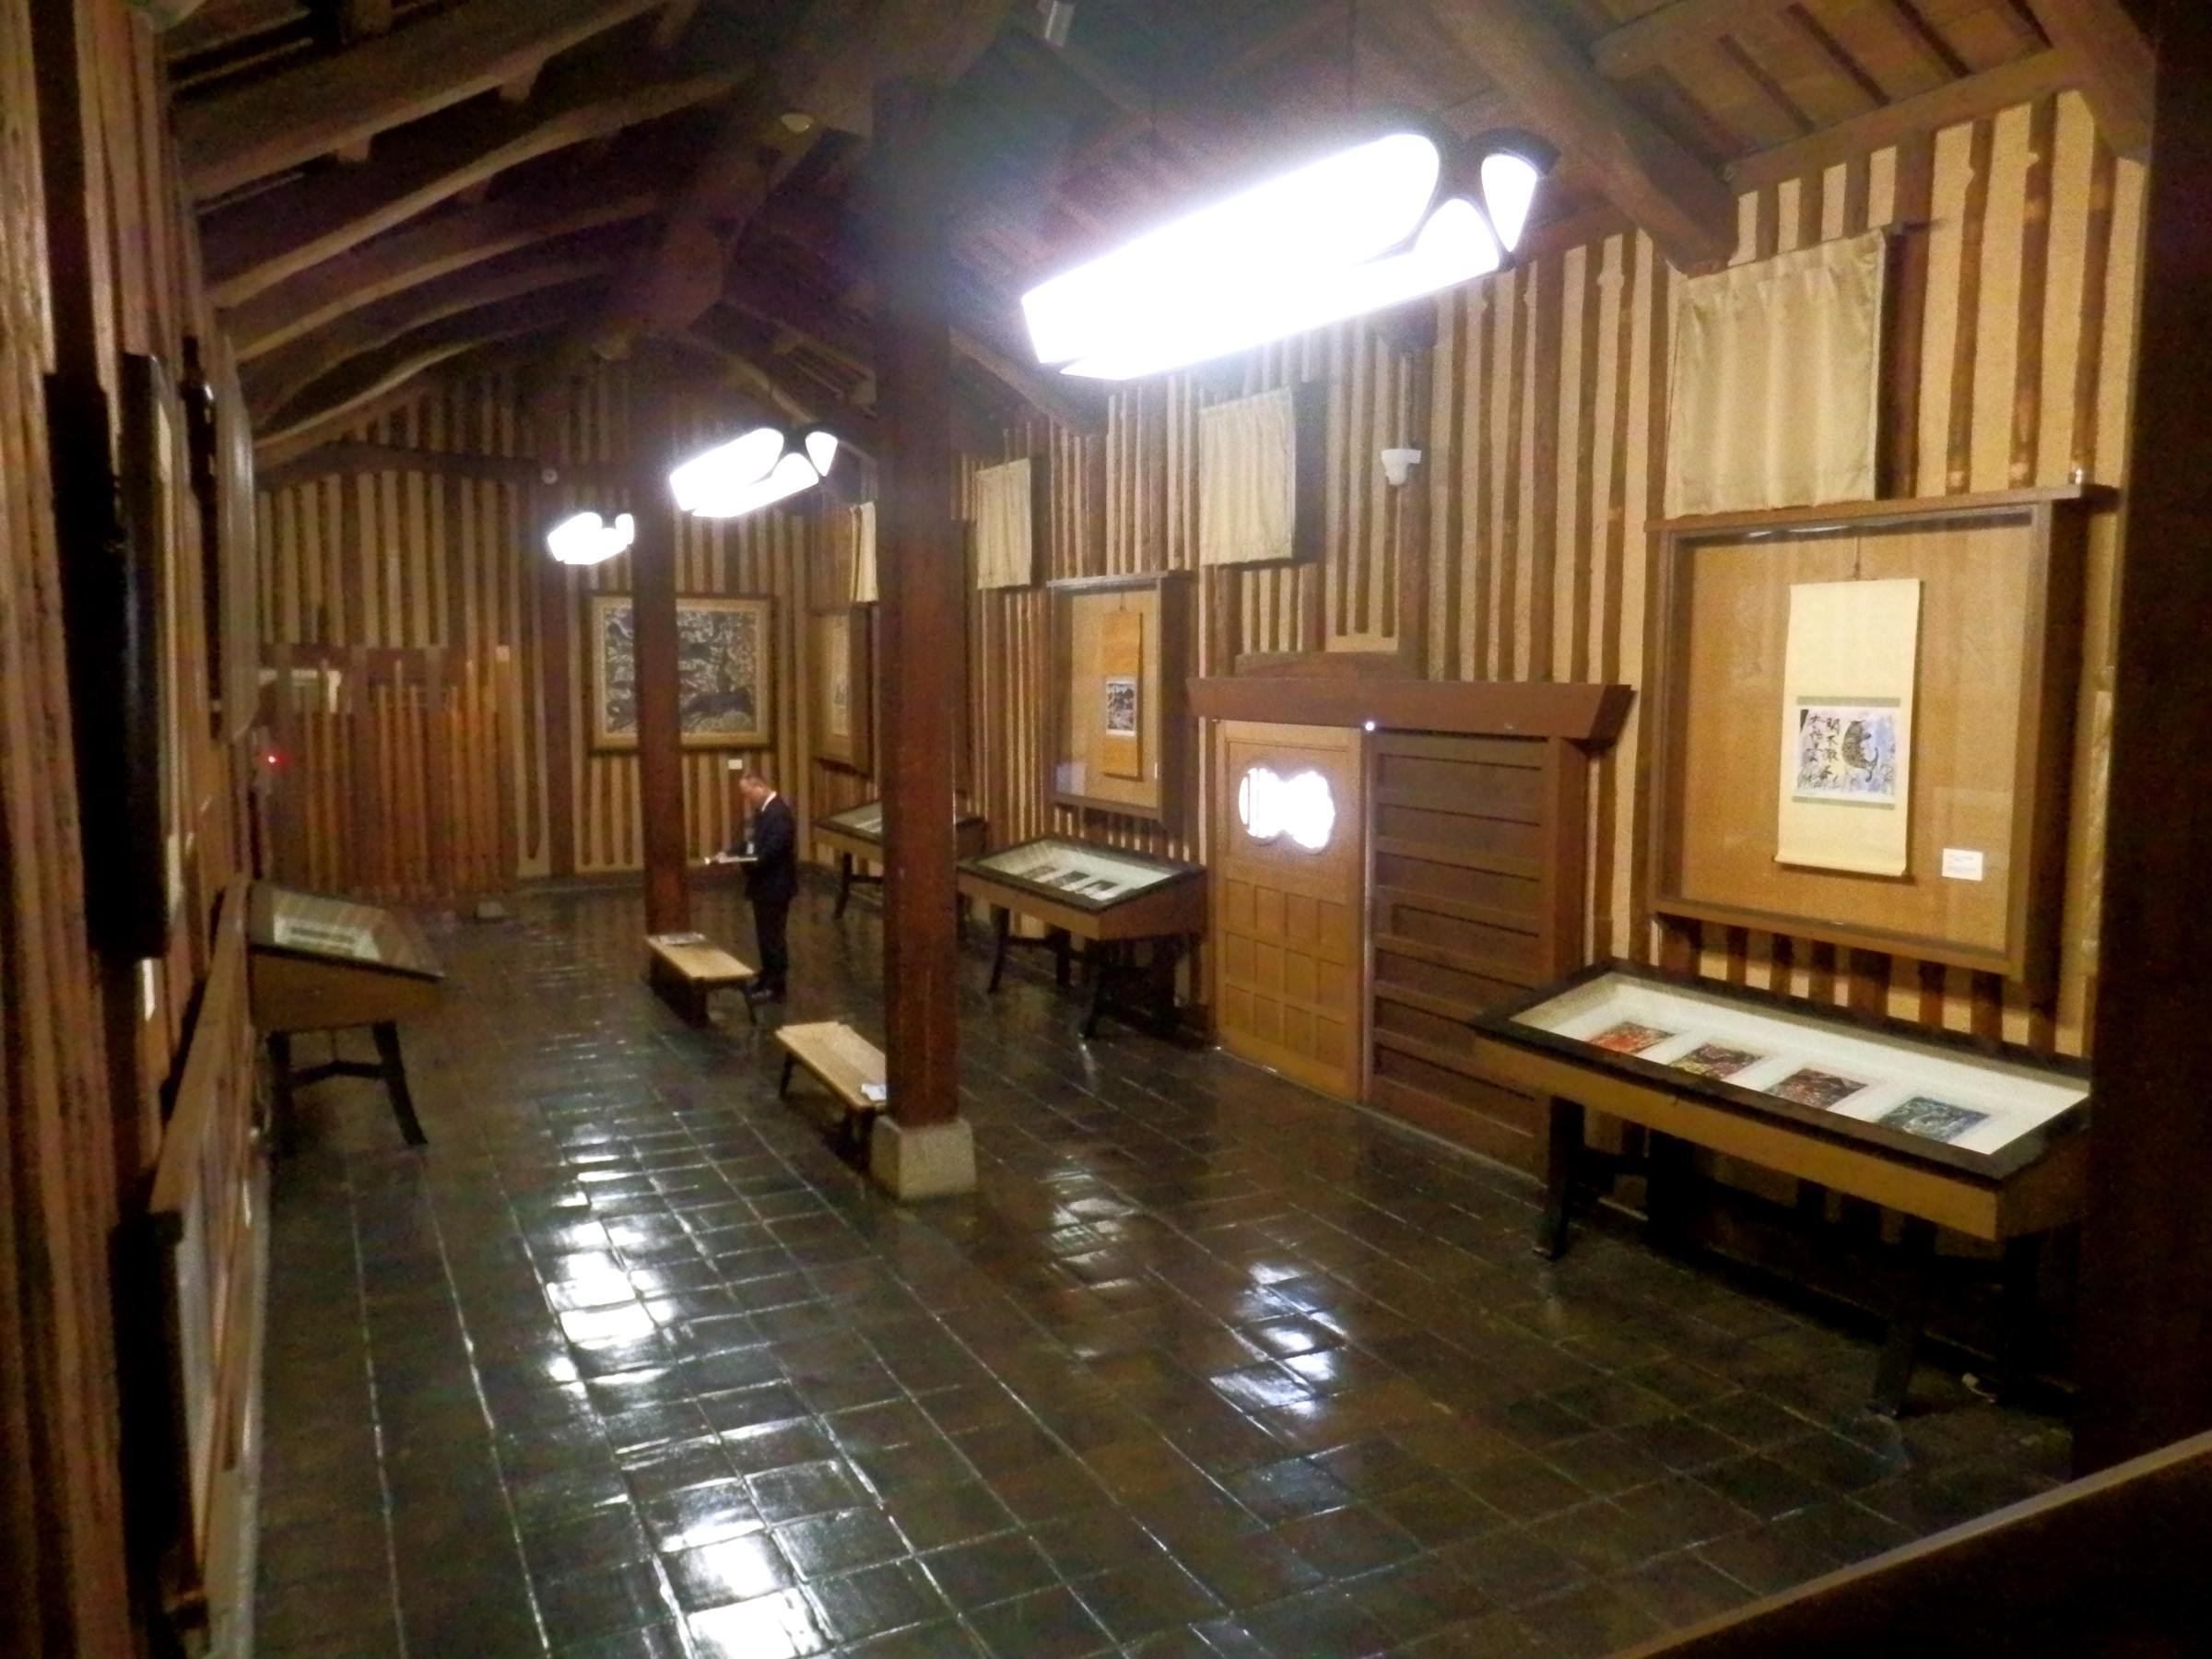 Inside one of the galleries at the Ohara Museum